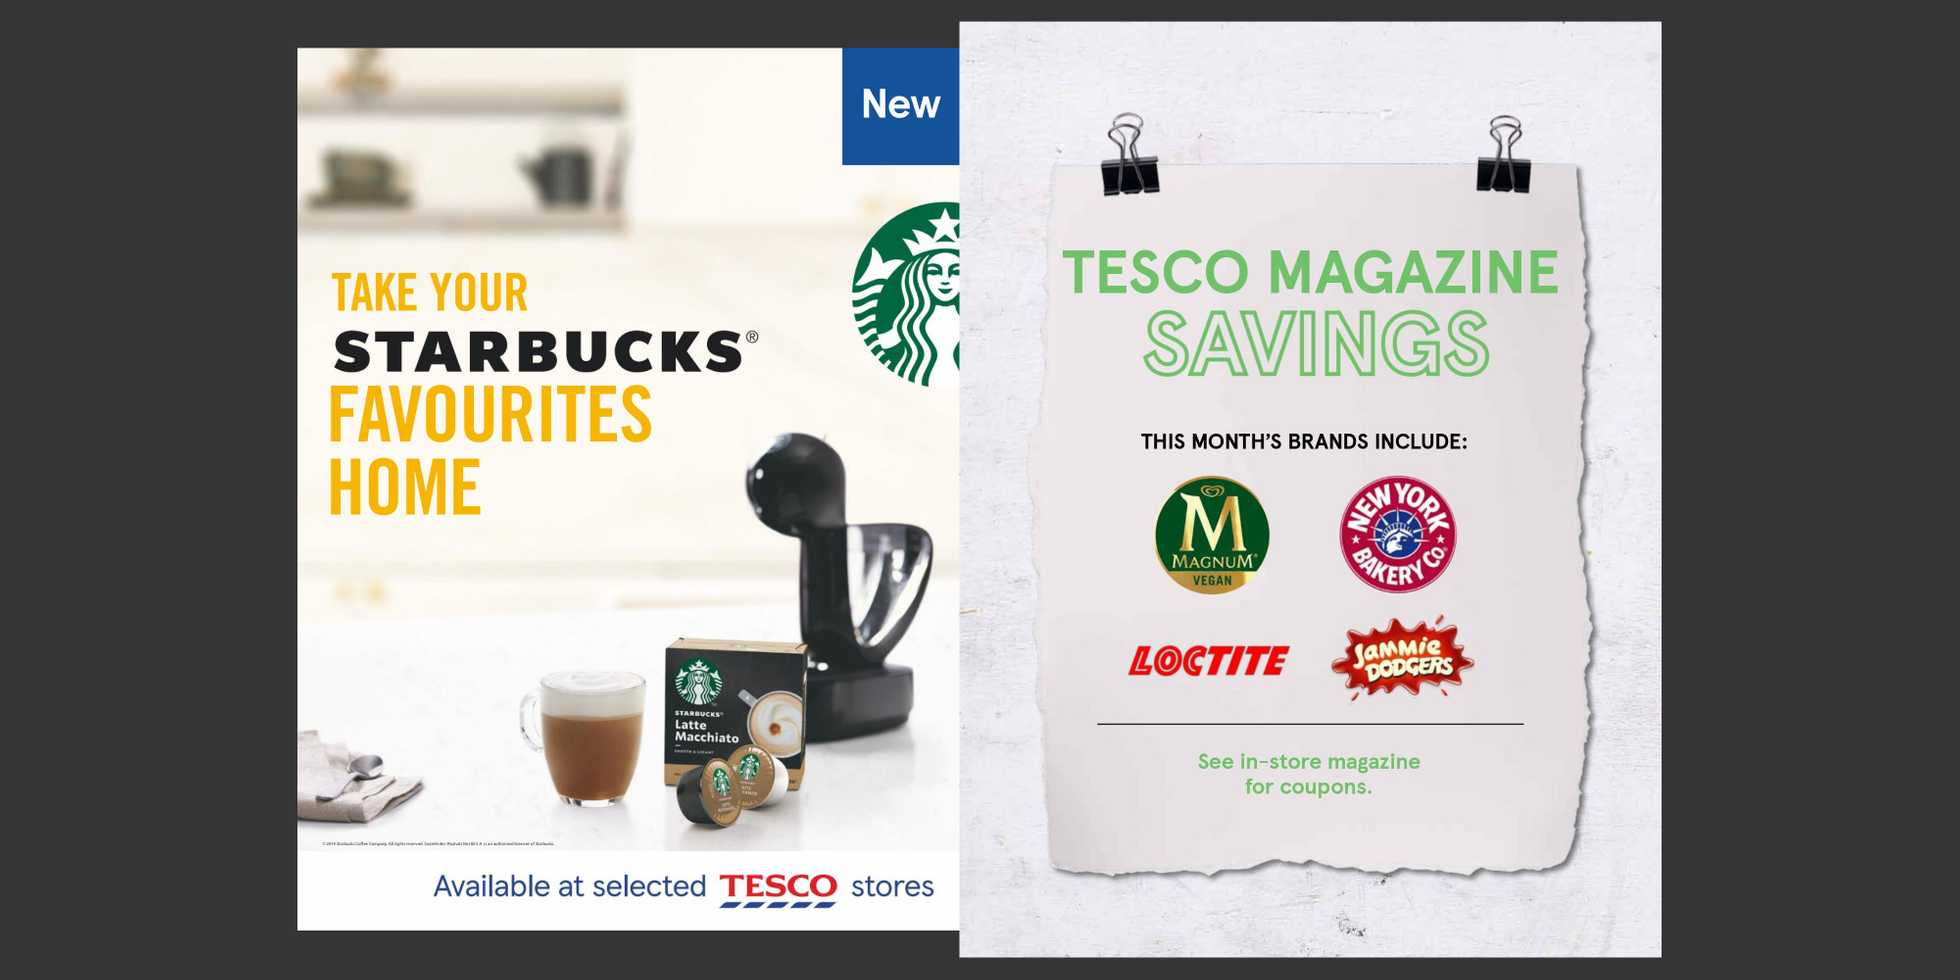 Tesco - NEWSPAPERS_singleNewspaper_alt_presentationSliderItem_startAt 2019-05-01 - página 2